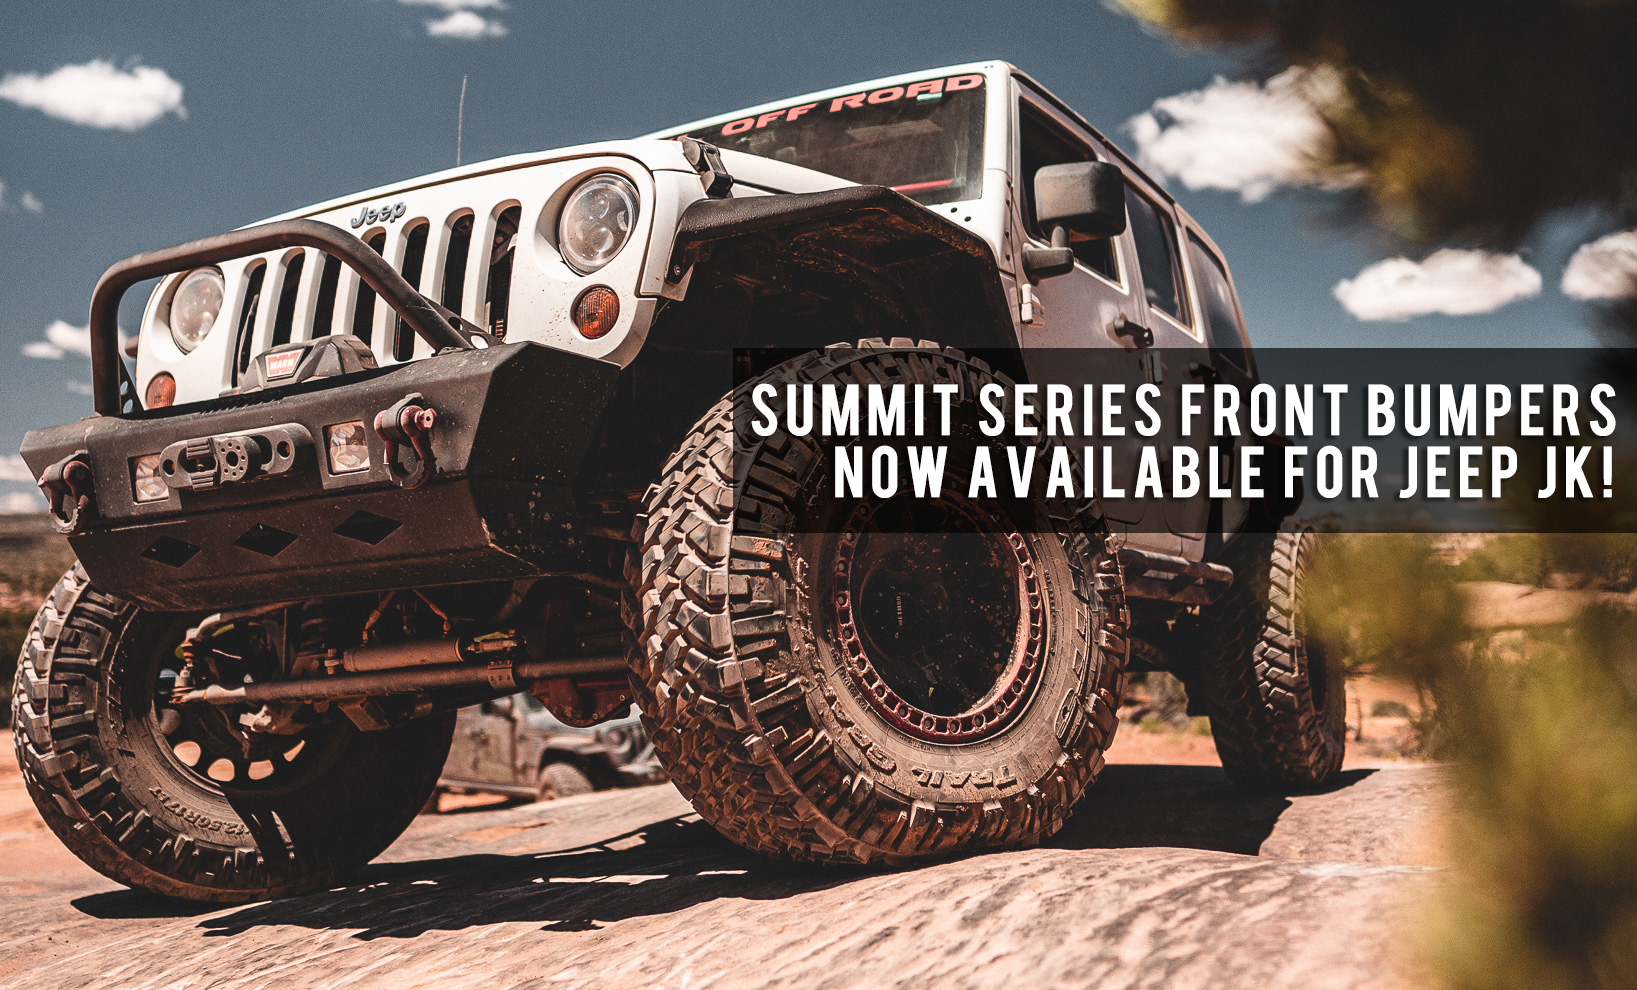 Rebel Off Road Summit Series Front Bumpers